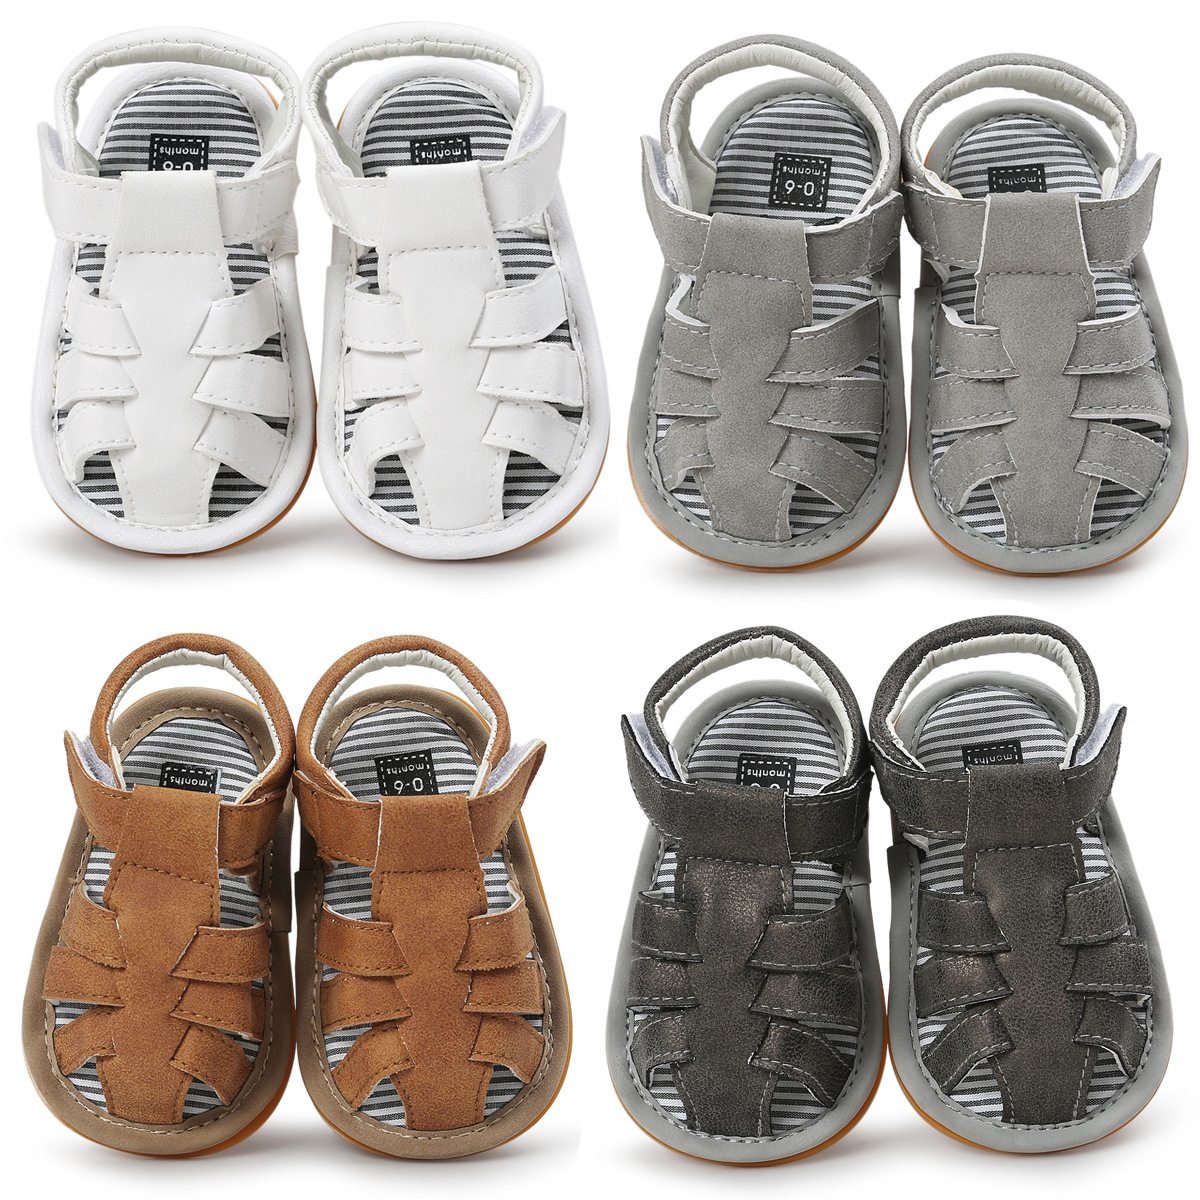 Romirus 2017 summer kids shoes brand closed toe toddler boys sandals orthopedic sport pu leather baby boys sandals shoes SD002 2018 brand kids sandals for boys sandals fashion summer children shoes baby boy closed toe beach toddler sandals for kids shoes